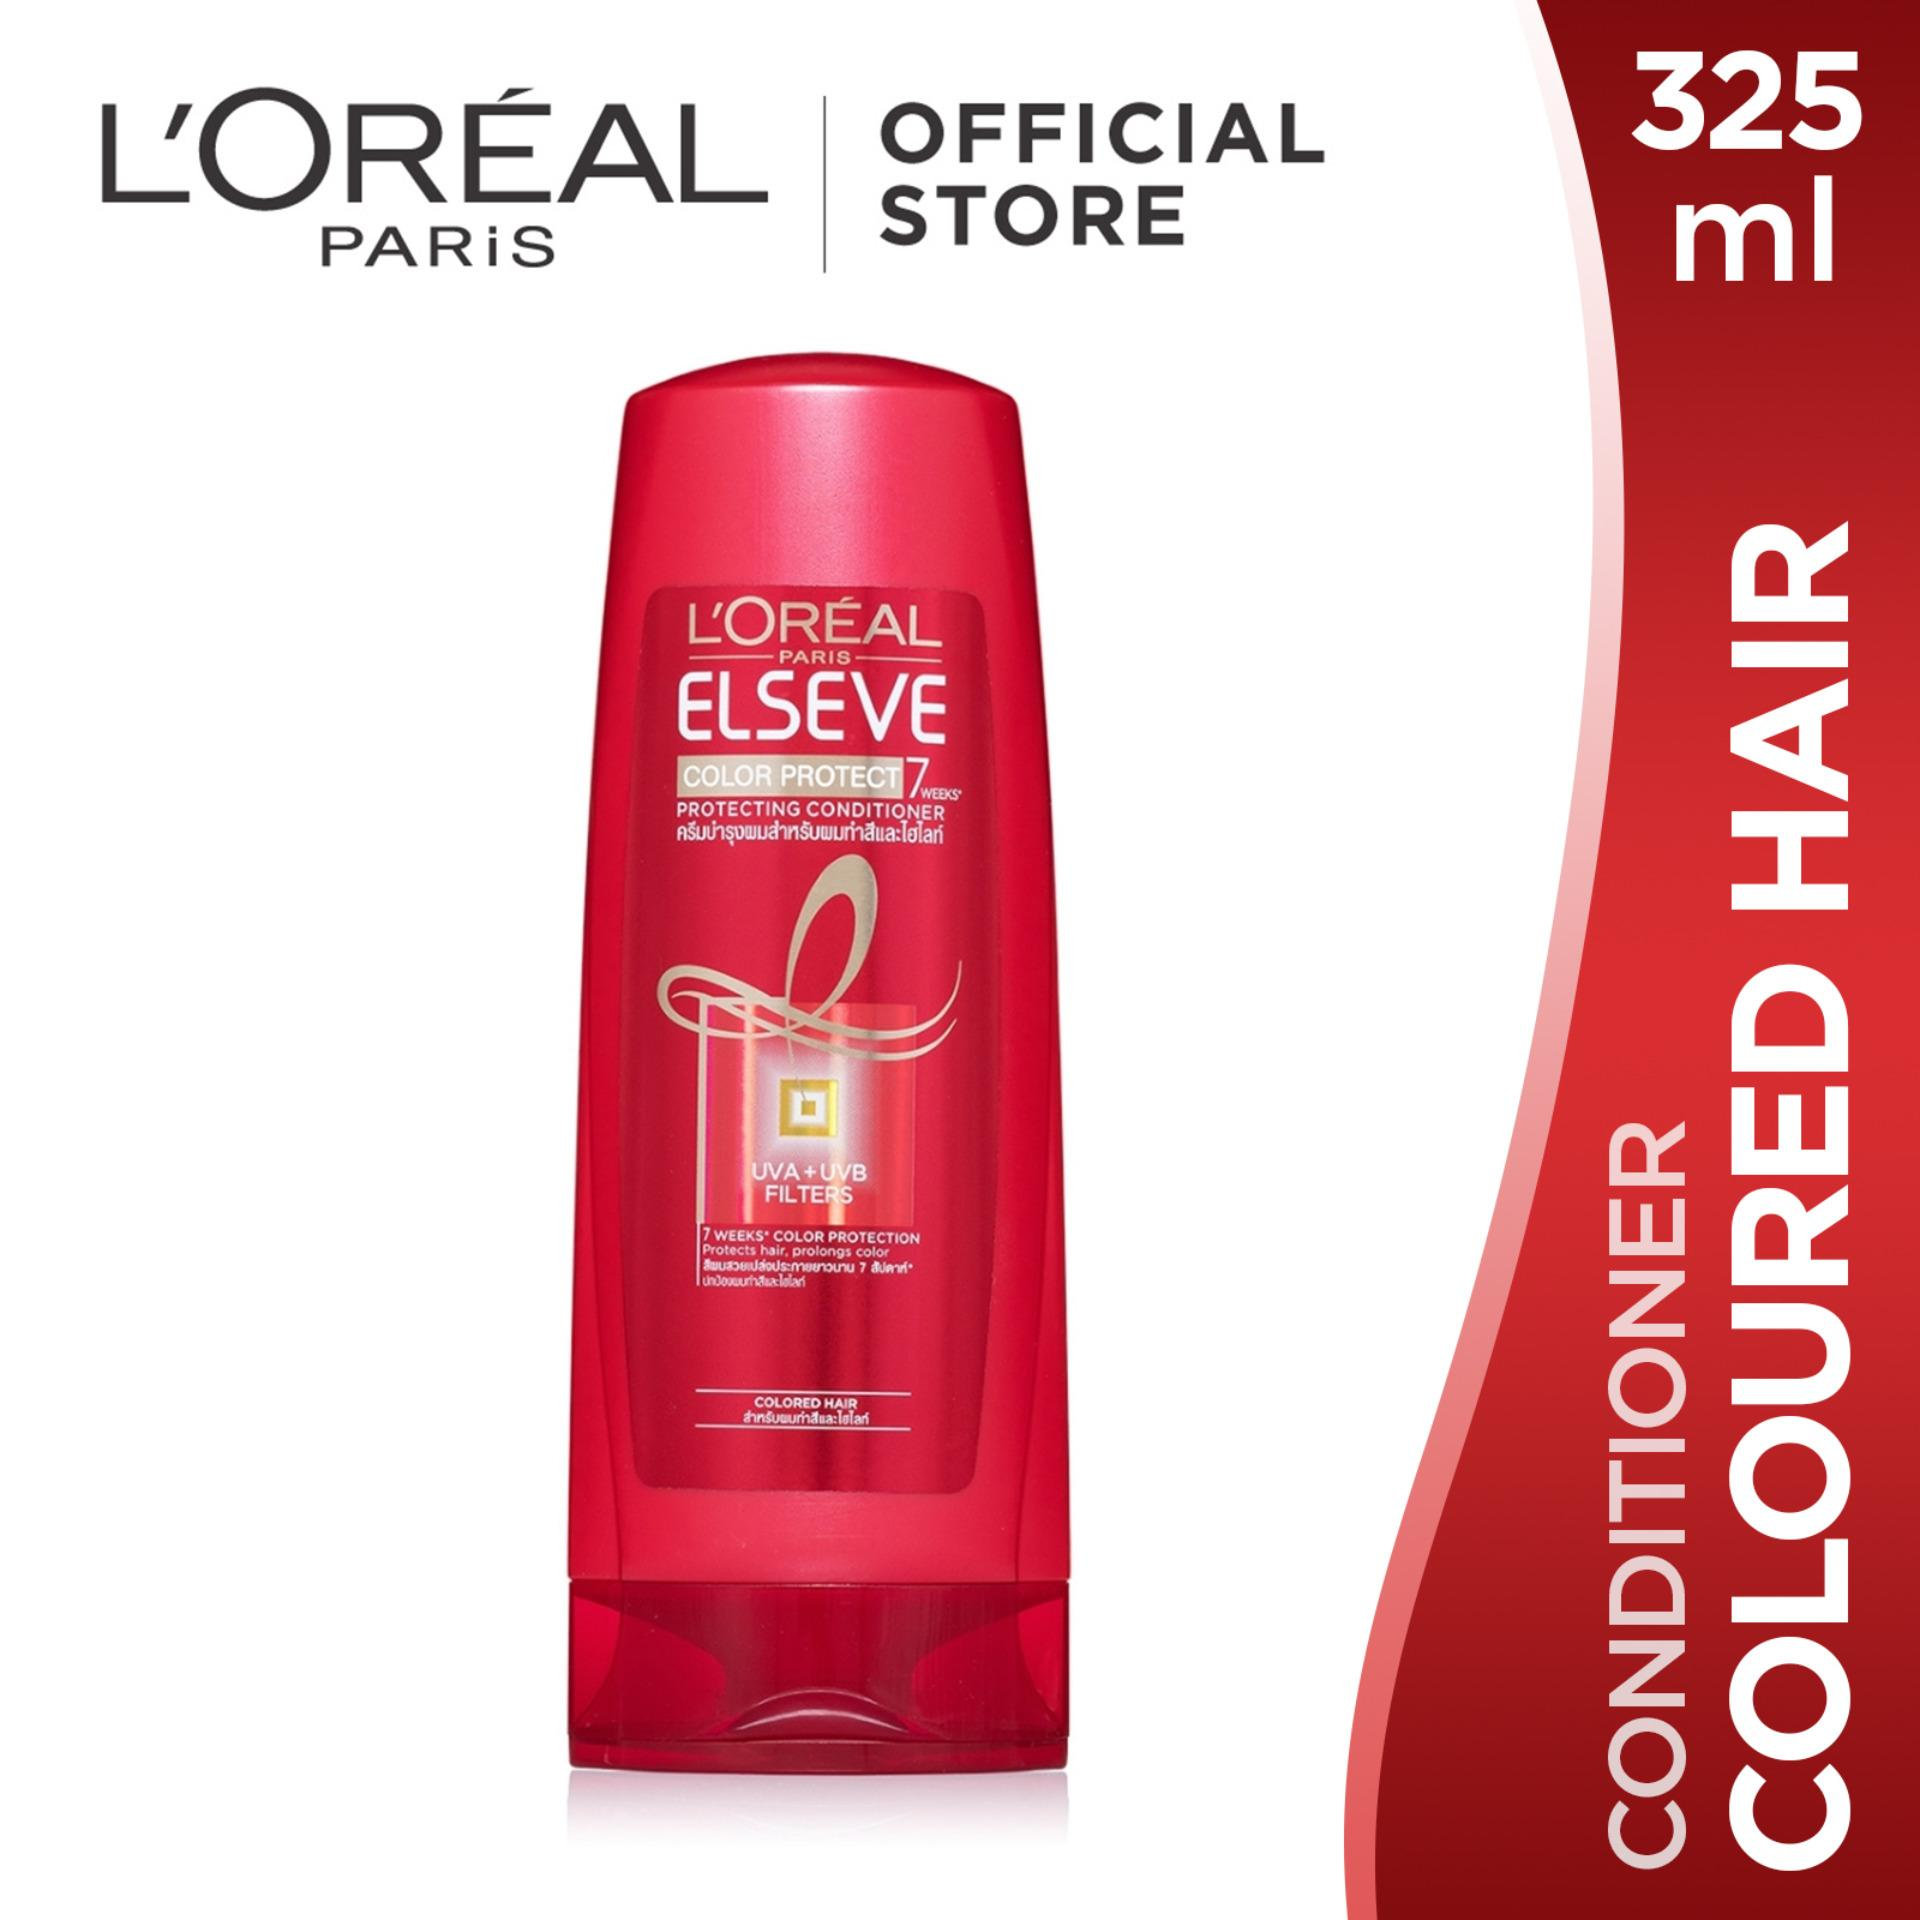 Loreal Paris Elseve Color-Vive Protecting Conditioner 325 Ml By Loreal Paris.